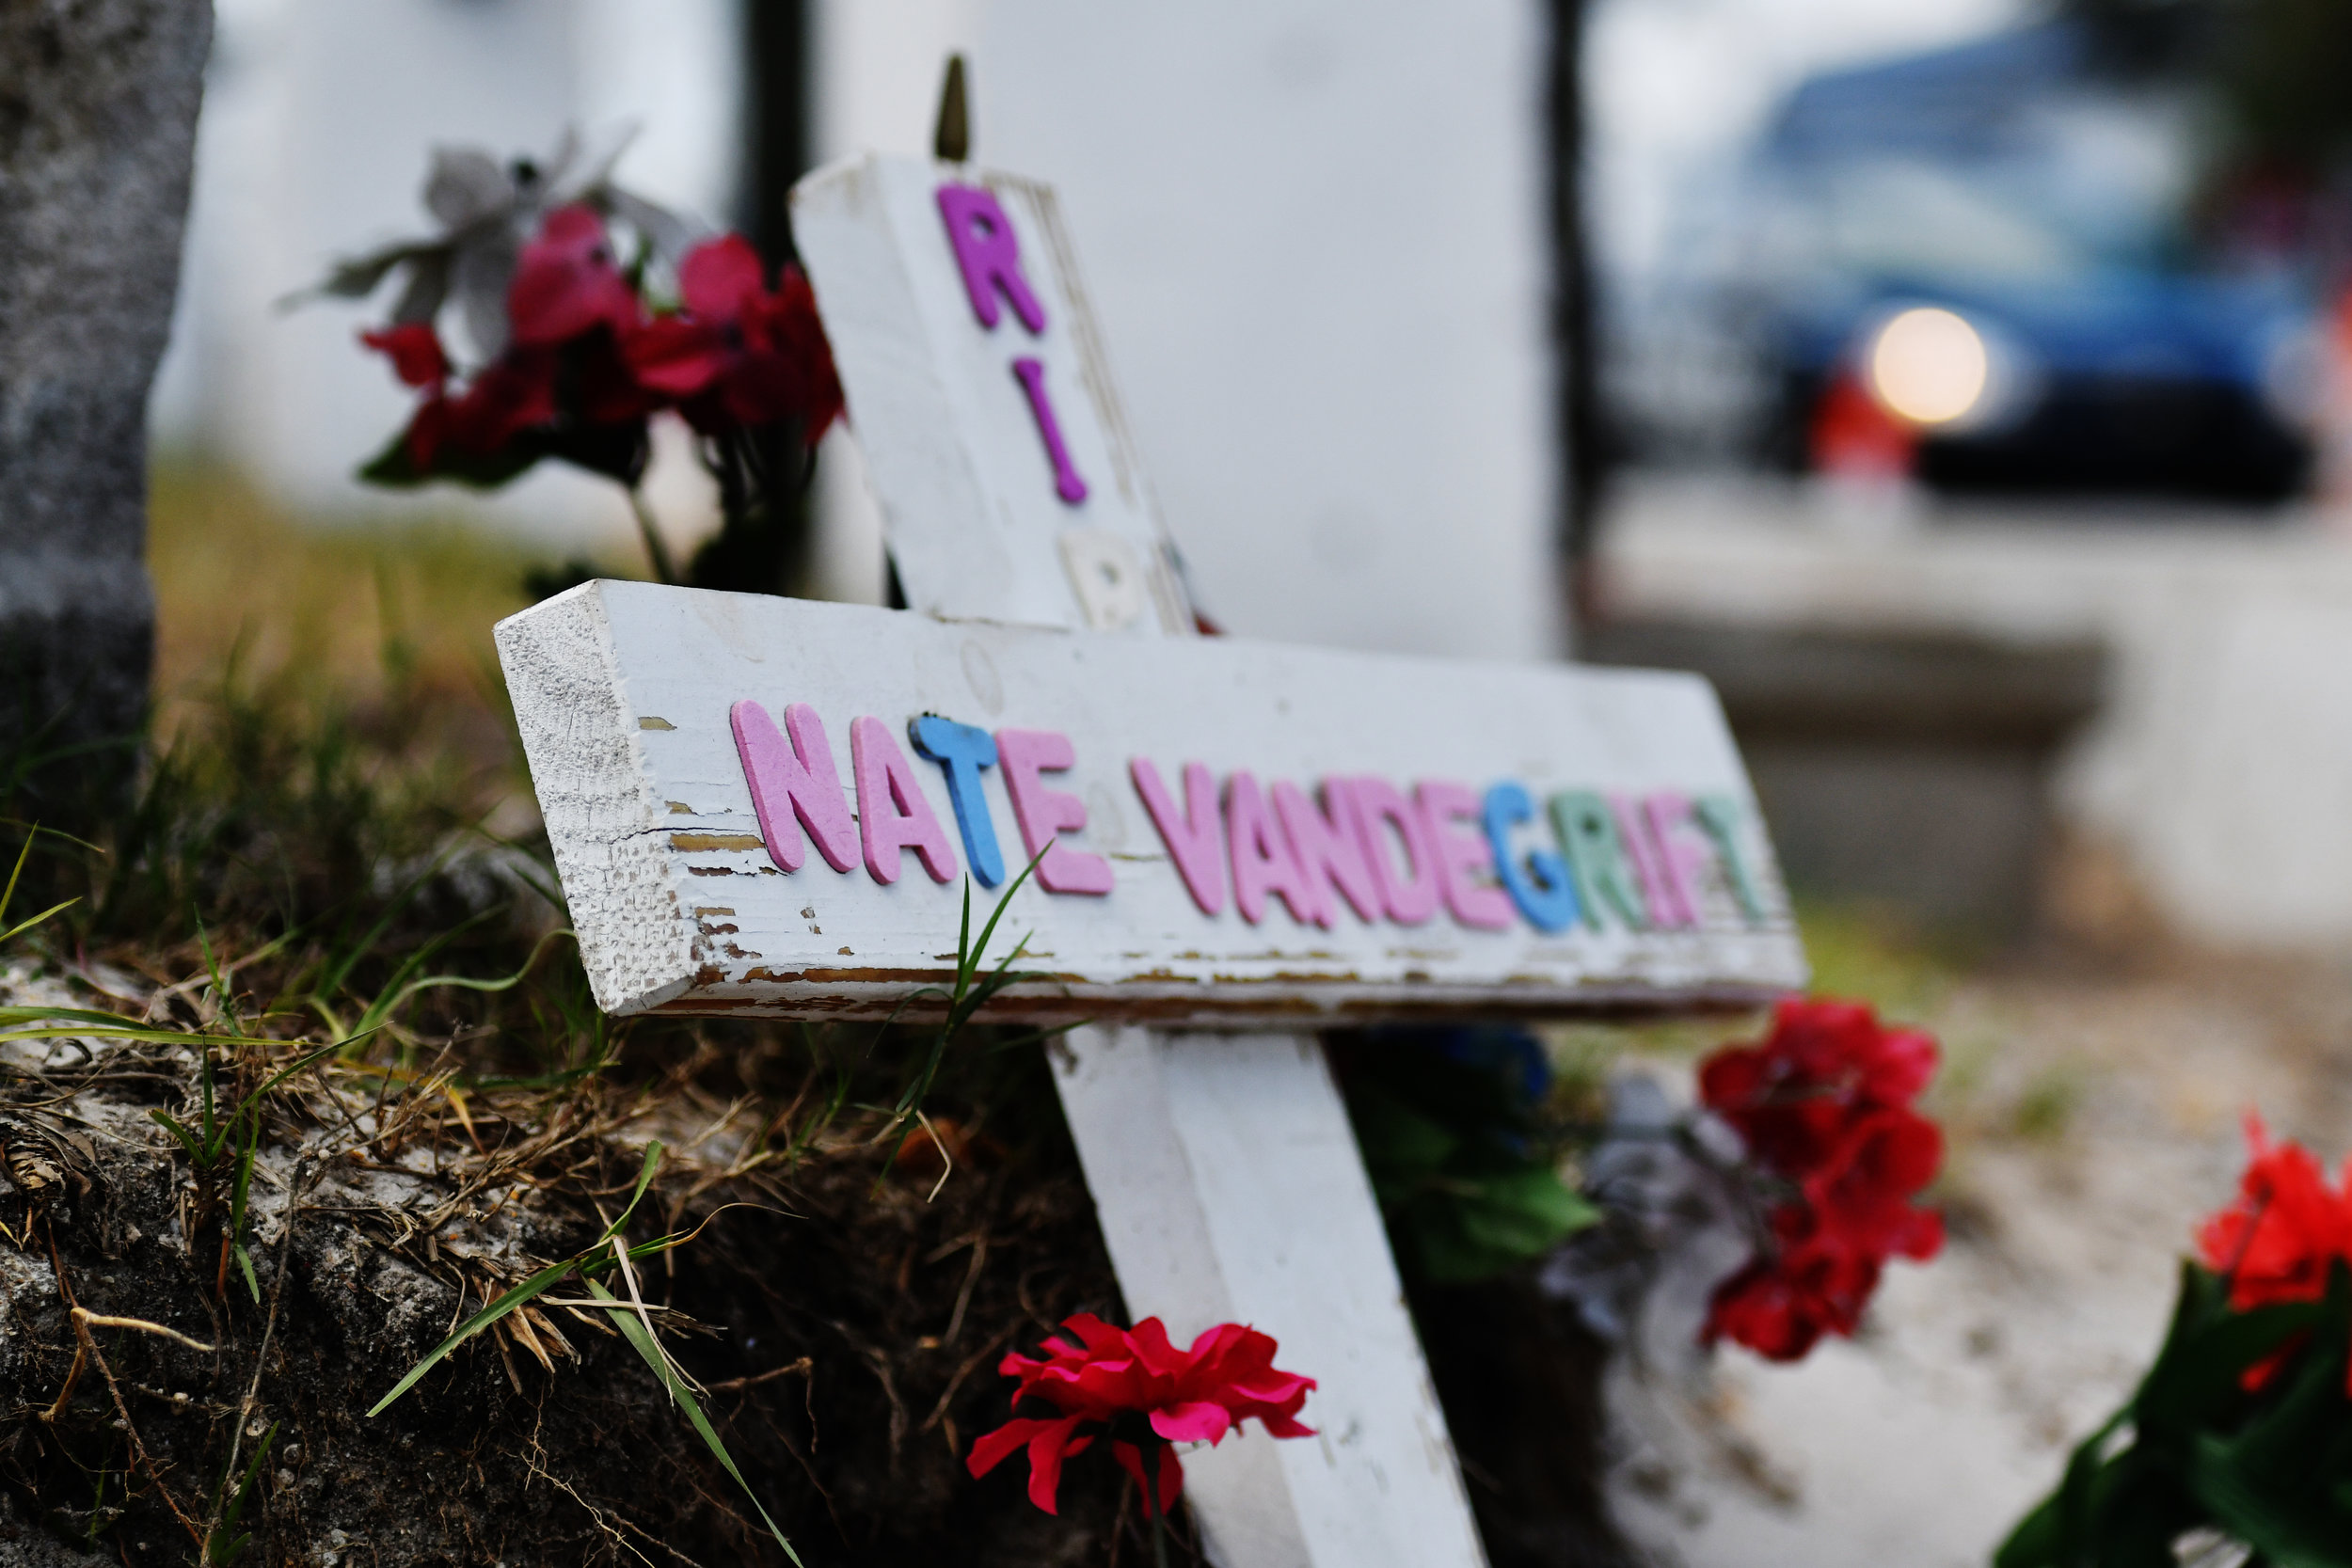 """A cross reading """"RIP NATE VANDEGRIFT"""" lies in a corner of the intersection where he passed away."""